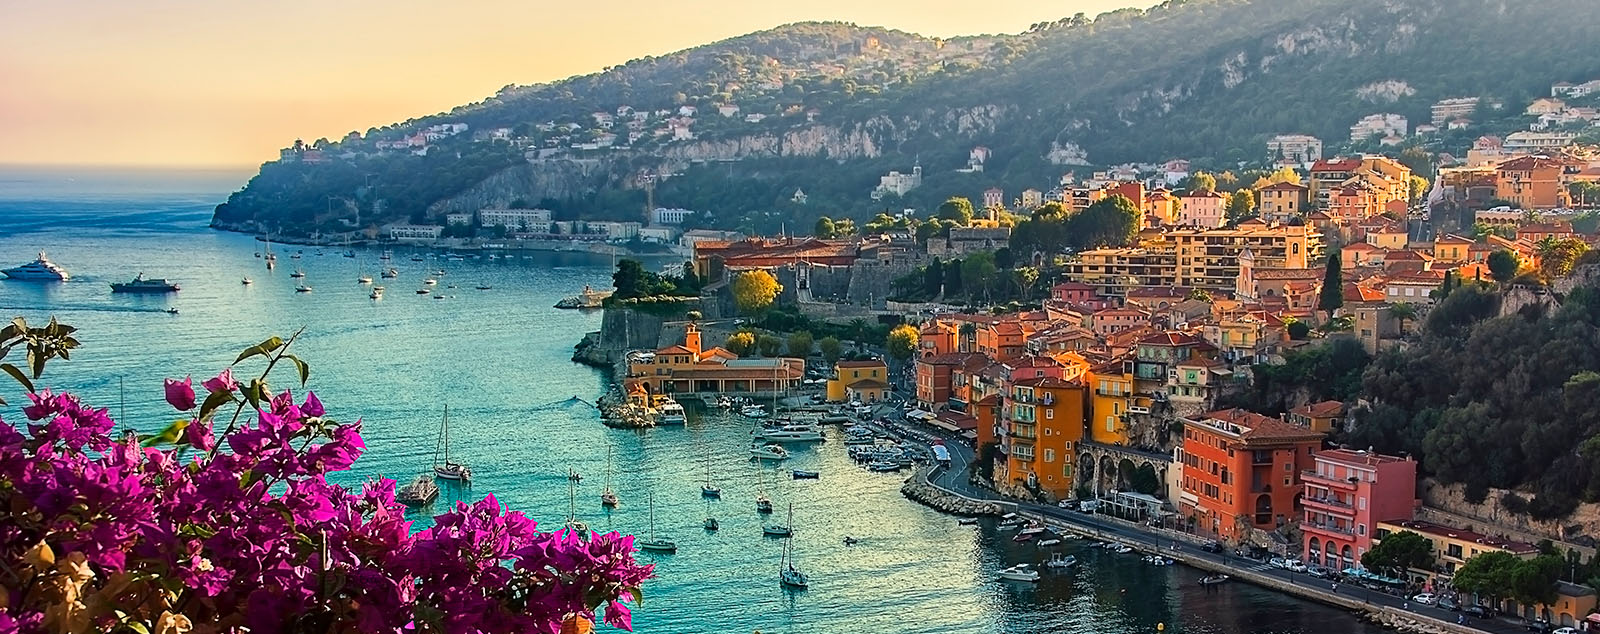 The French Riviera Coast showing flowers, pastel coloured houses and beautiful waters